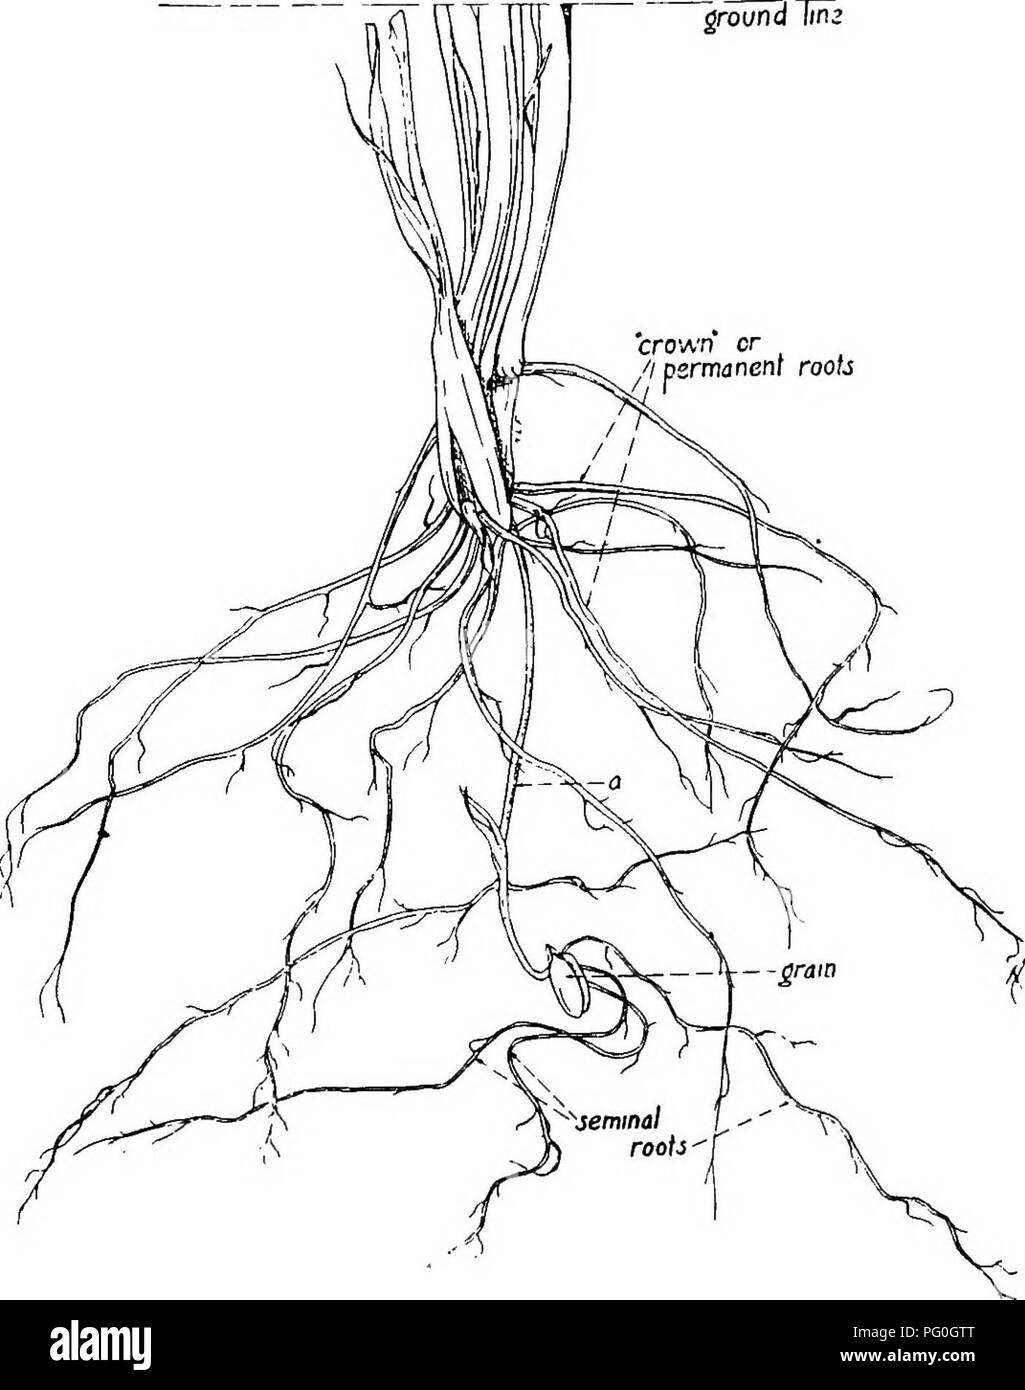 Plant Roots Below Ground Stock Photos & Plant Roots Below